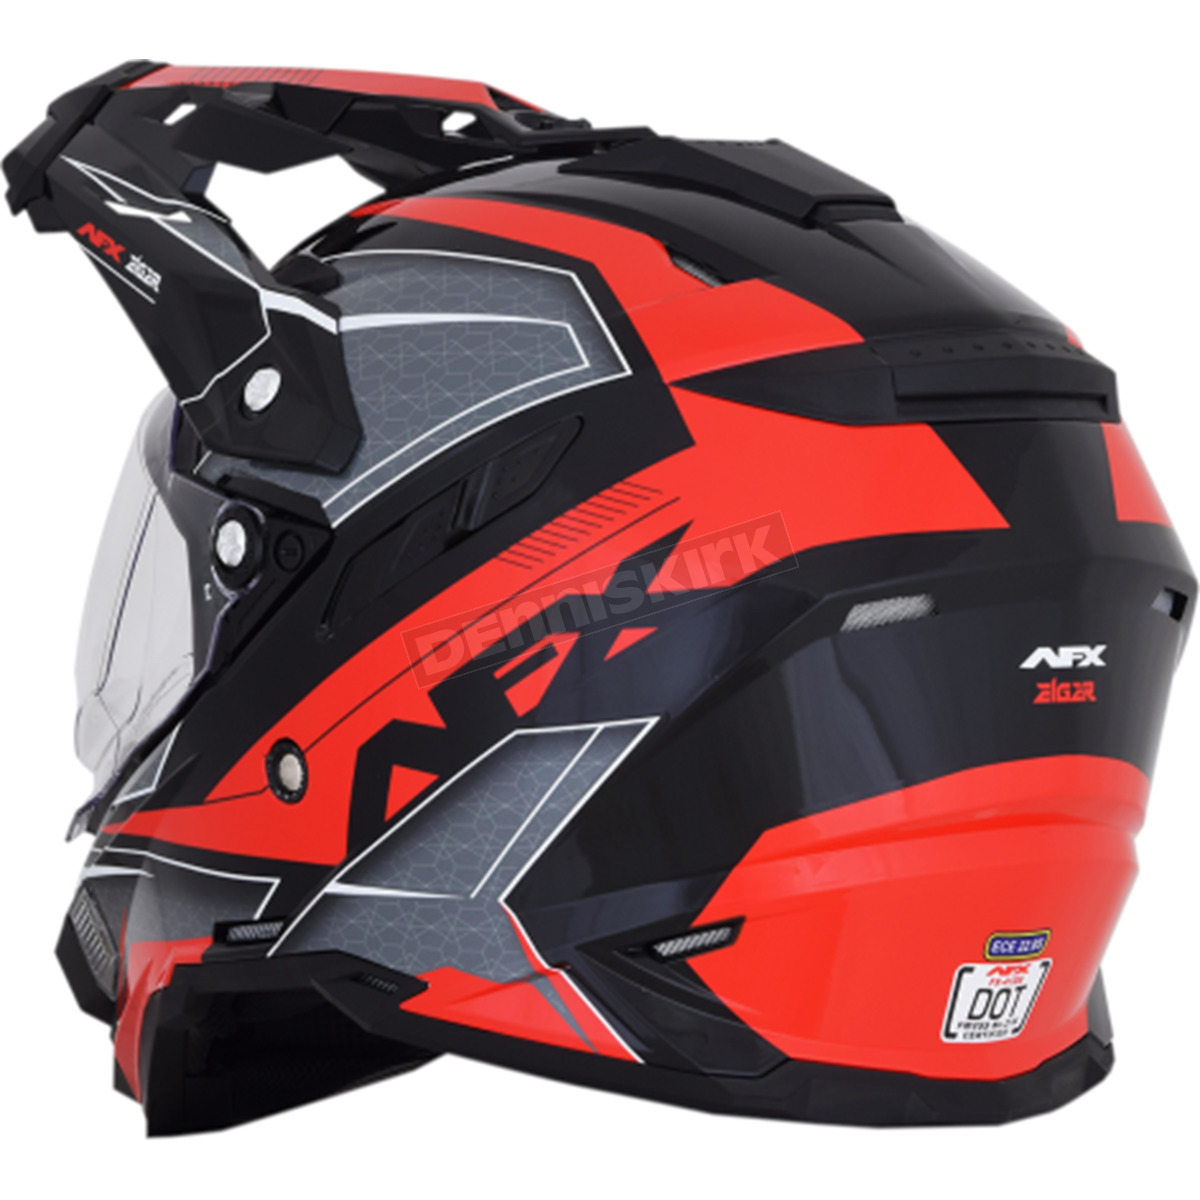 af915de1 AFX Black/Red FX-41 DS Eiger Helmet - 0110-5350 Dirt Bike Motorcycle ...